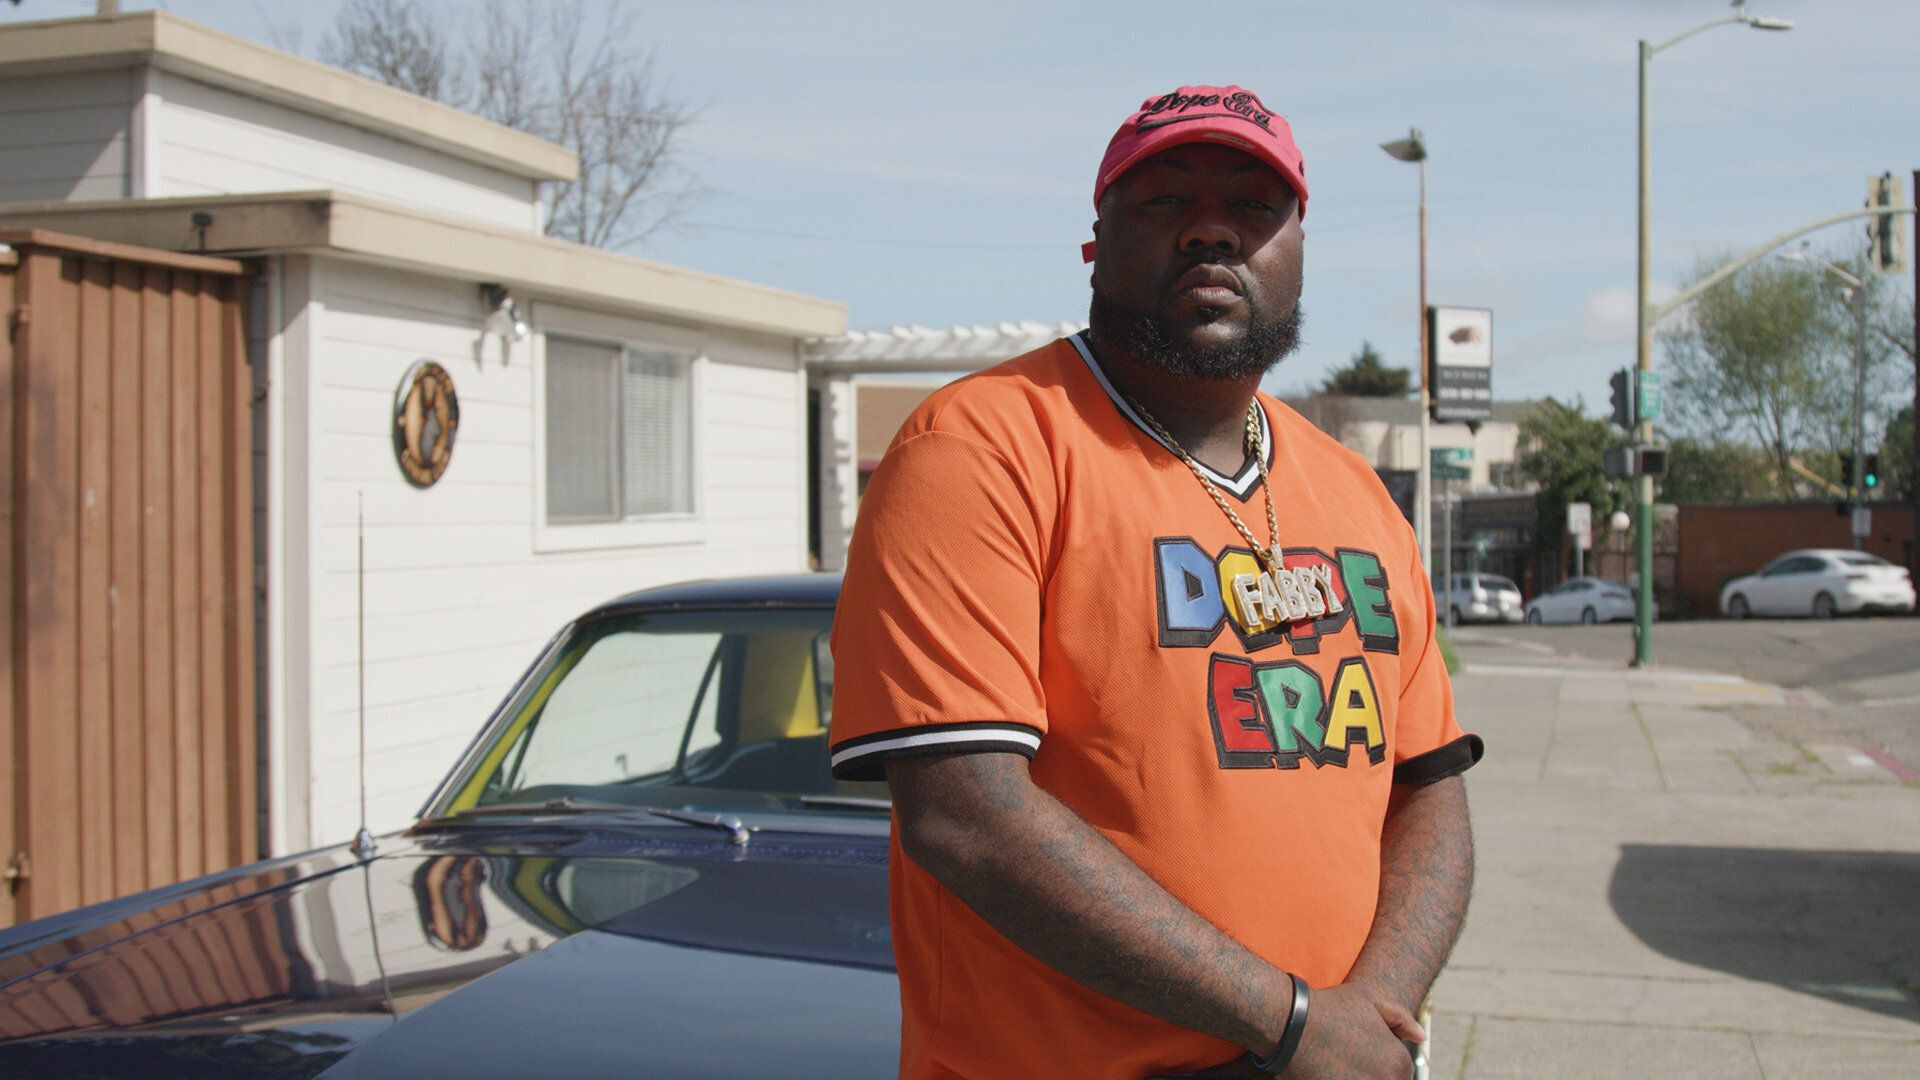 Mistah F.A.B. is an Oakland rapper who gives back to his community.